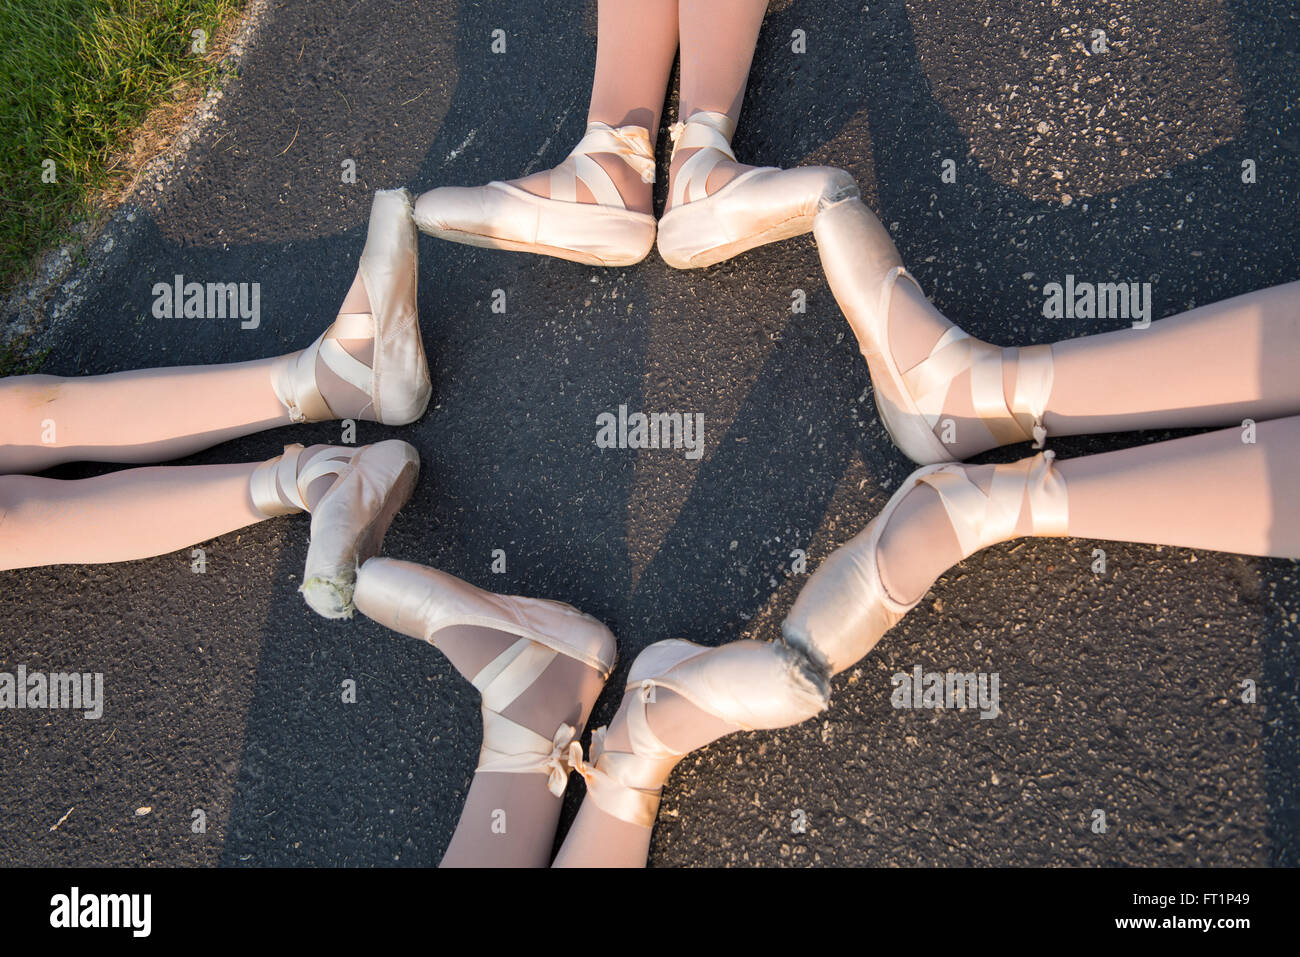 A Circle of Ballet Feet in Pointe shoes - Stock Image